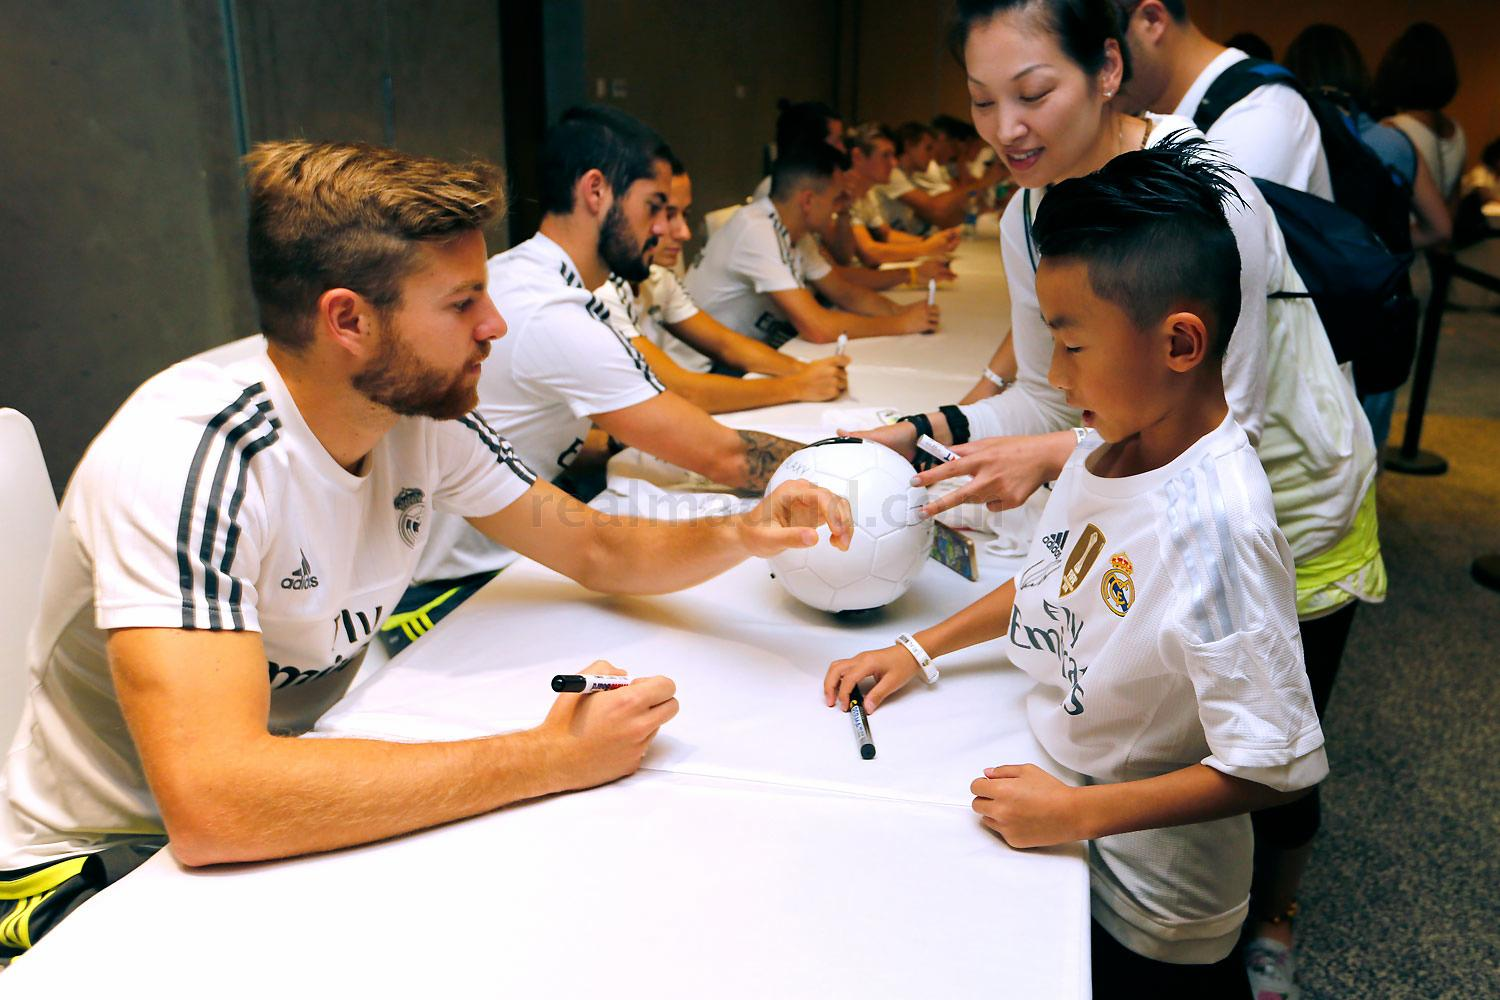 Real Madrid - Meet & Greet en Shanghái - 29-07-2015